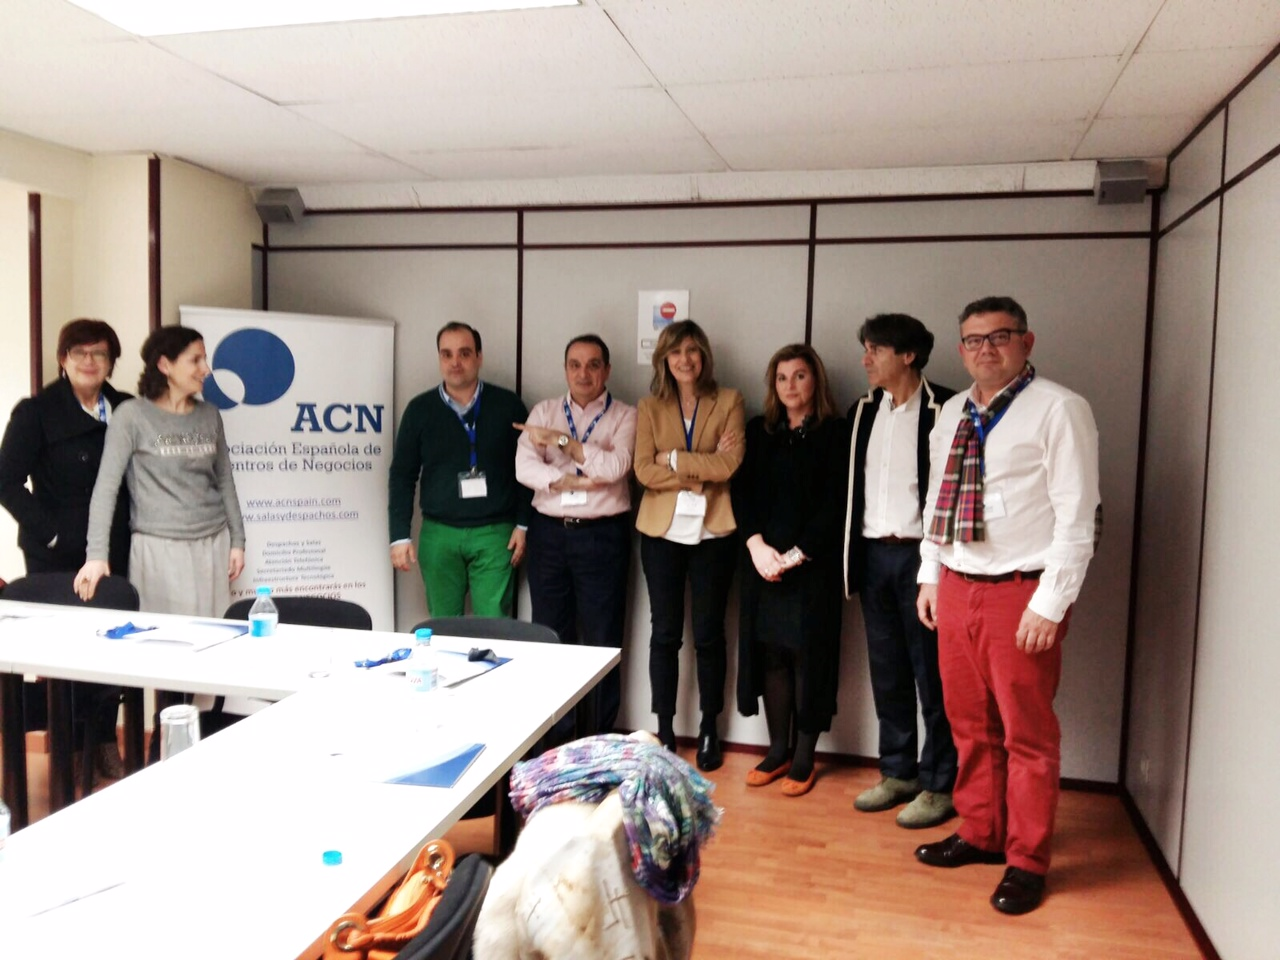 acn-networking-encuentros-acorun?a